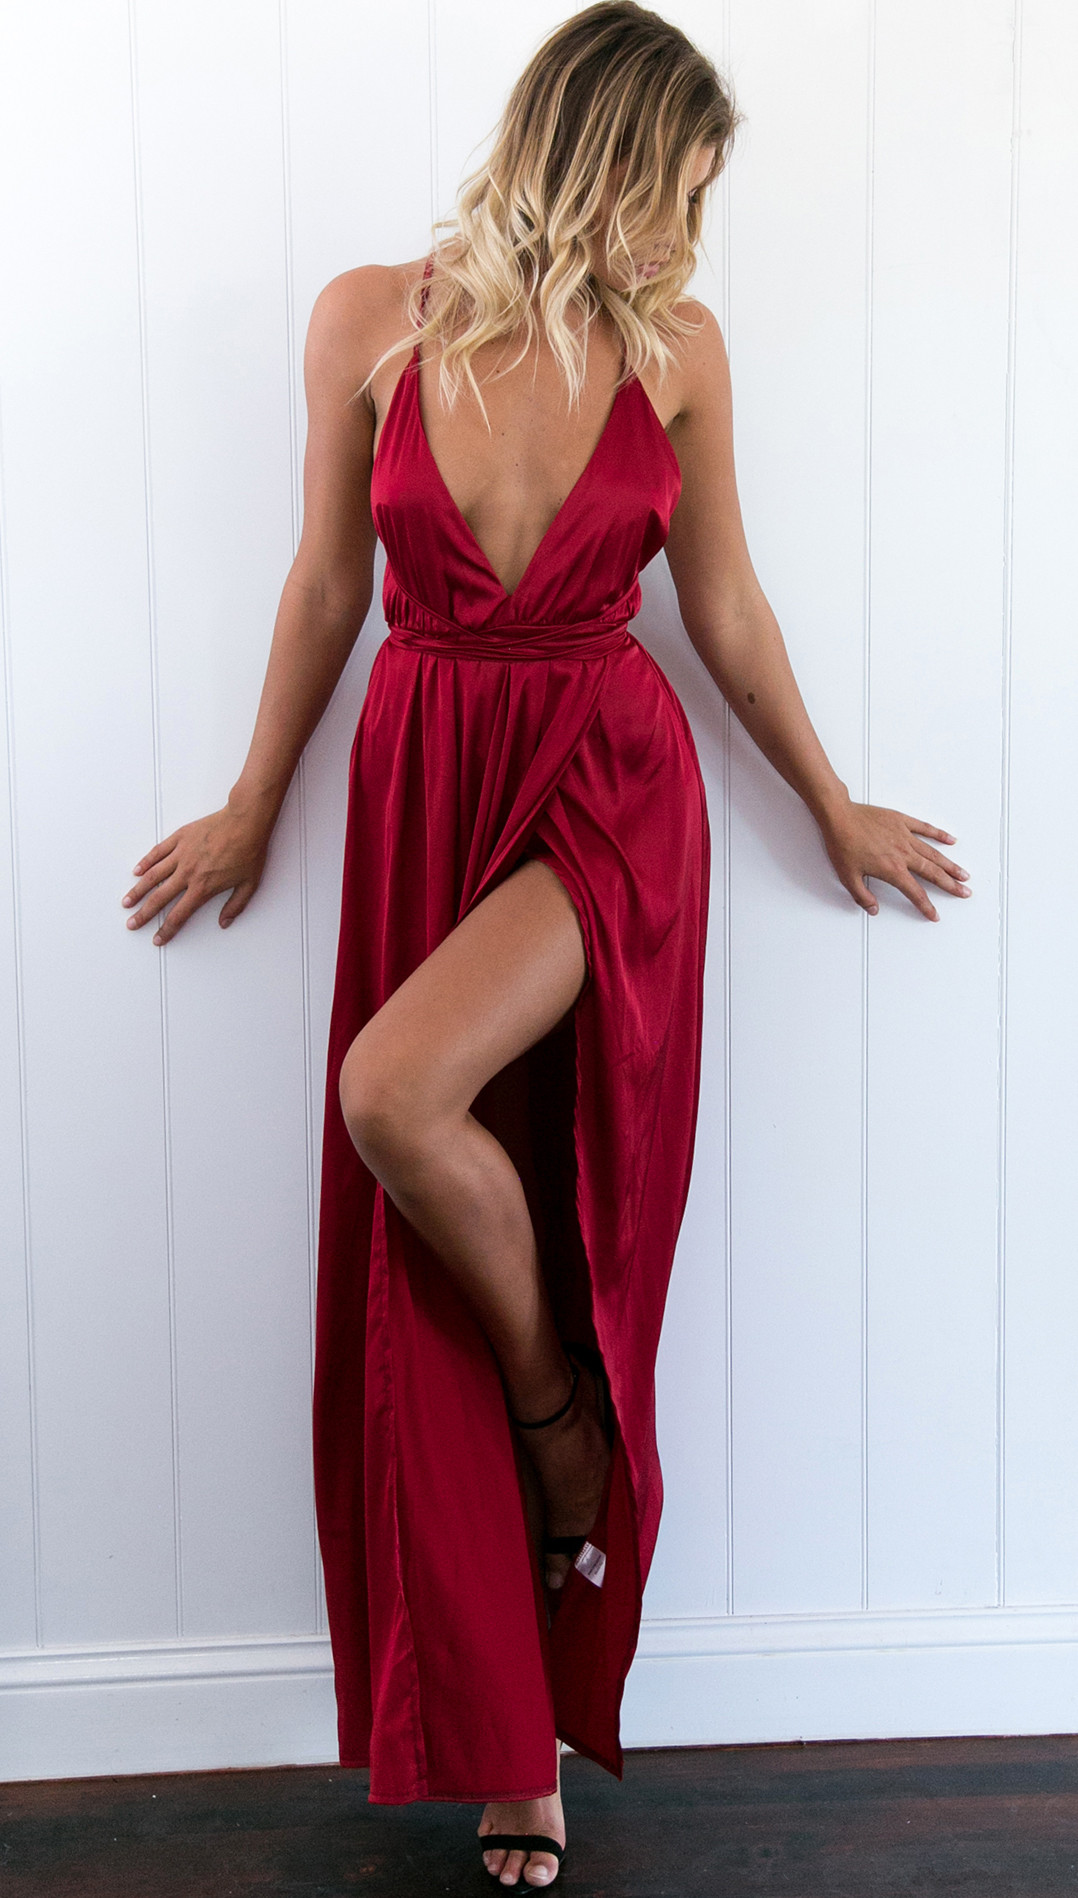 99b402ded8 Custom Made Strappy Satin Plunging V Neckline Open Back Cami Dress with  High Split